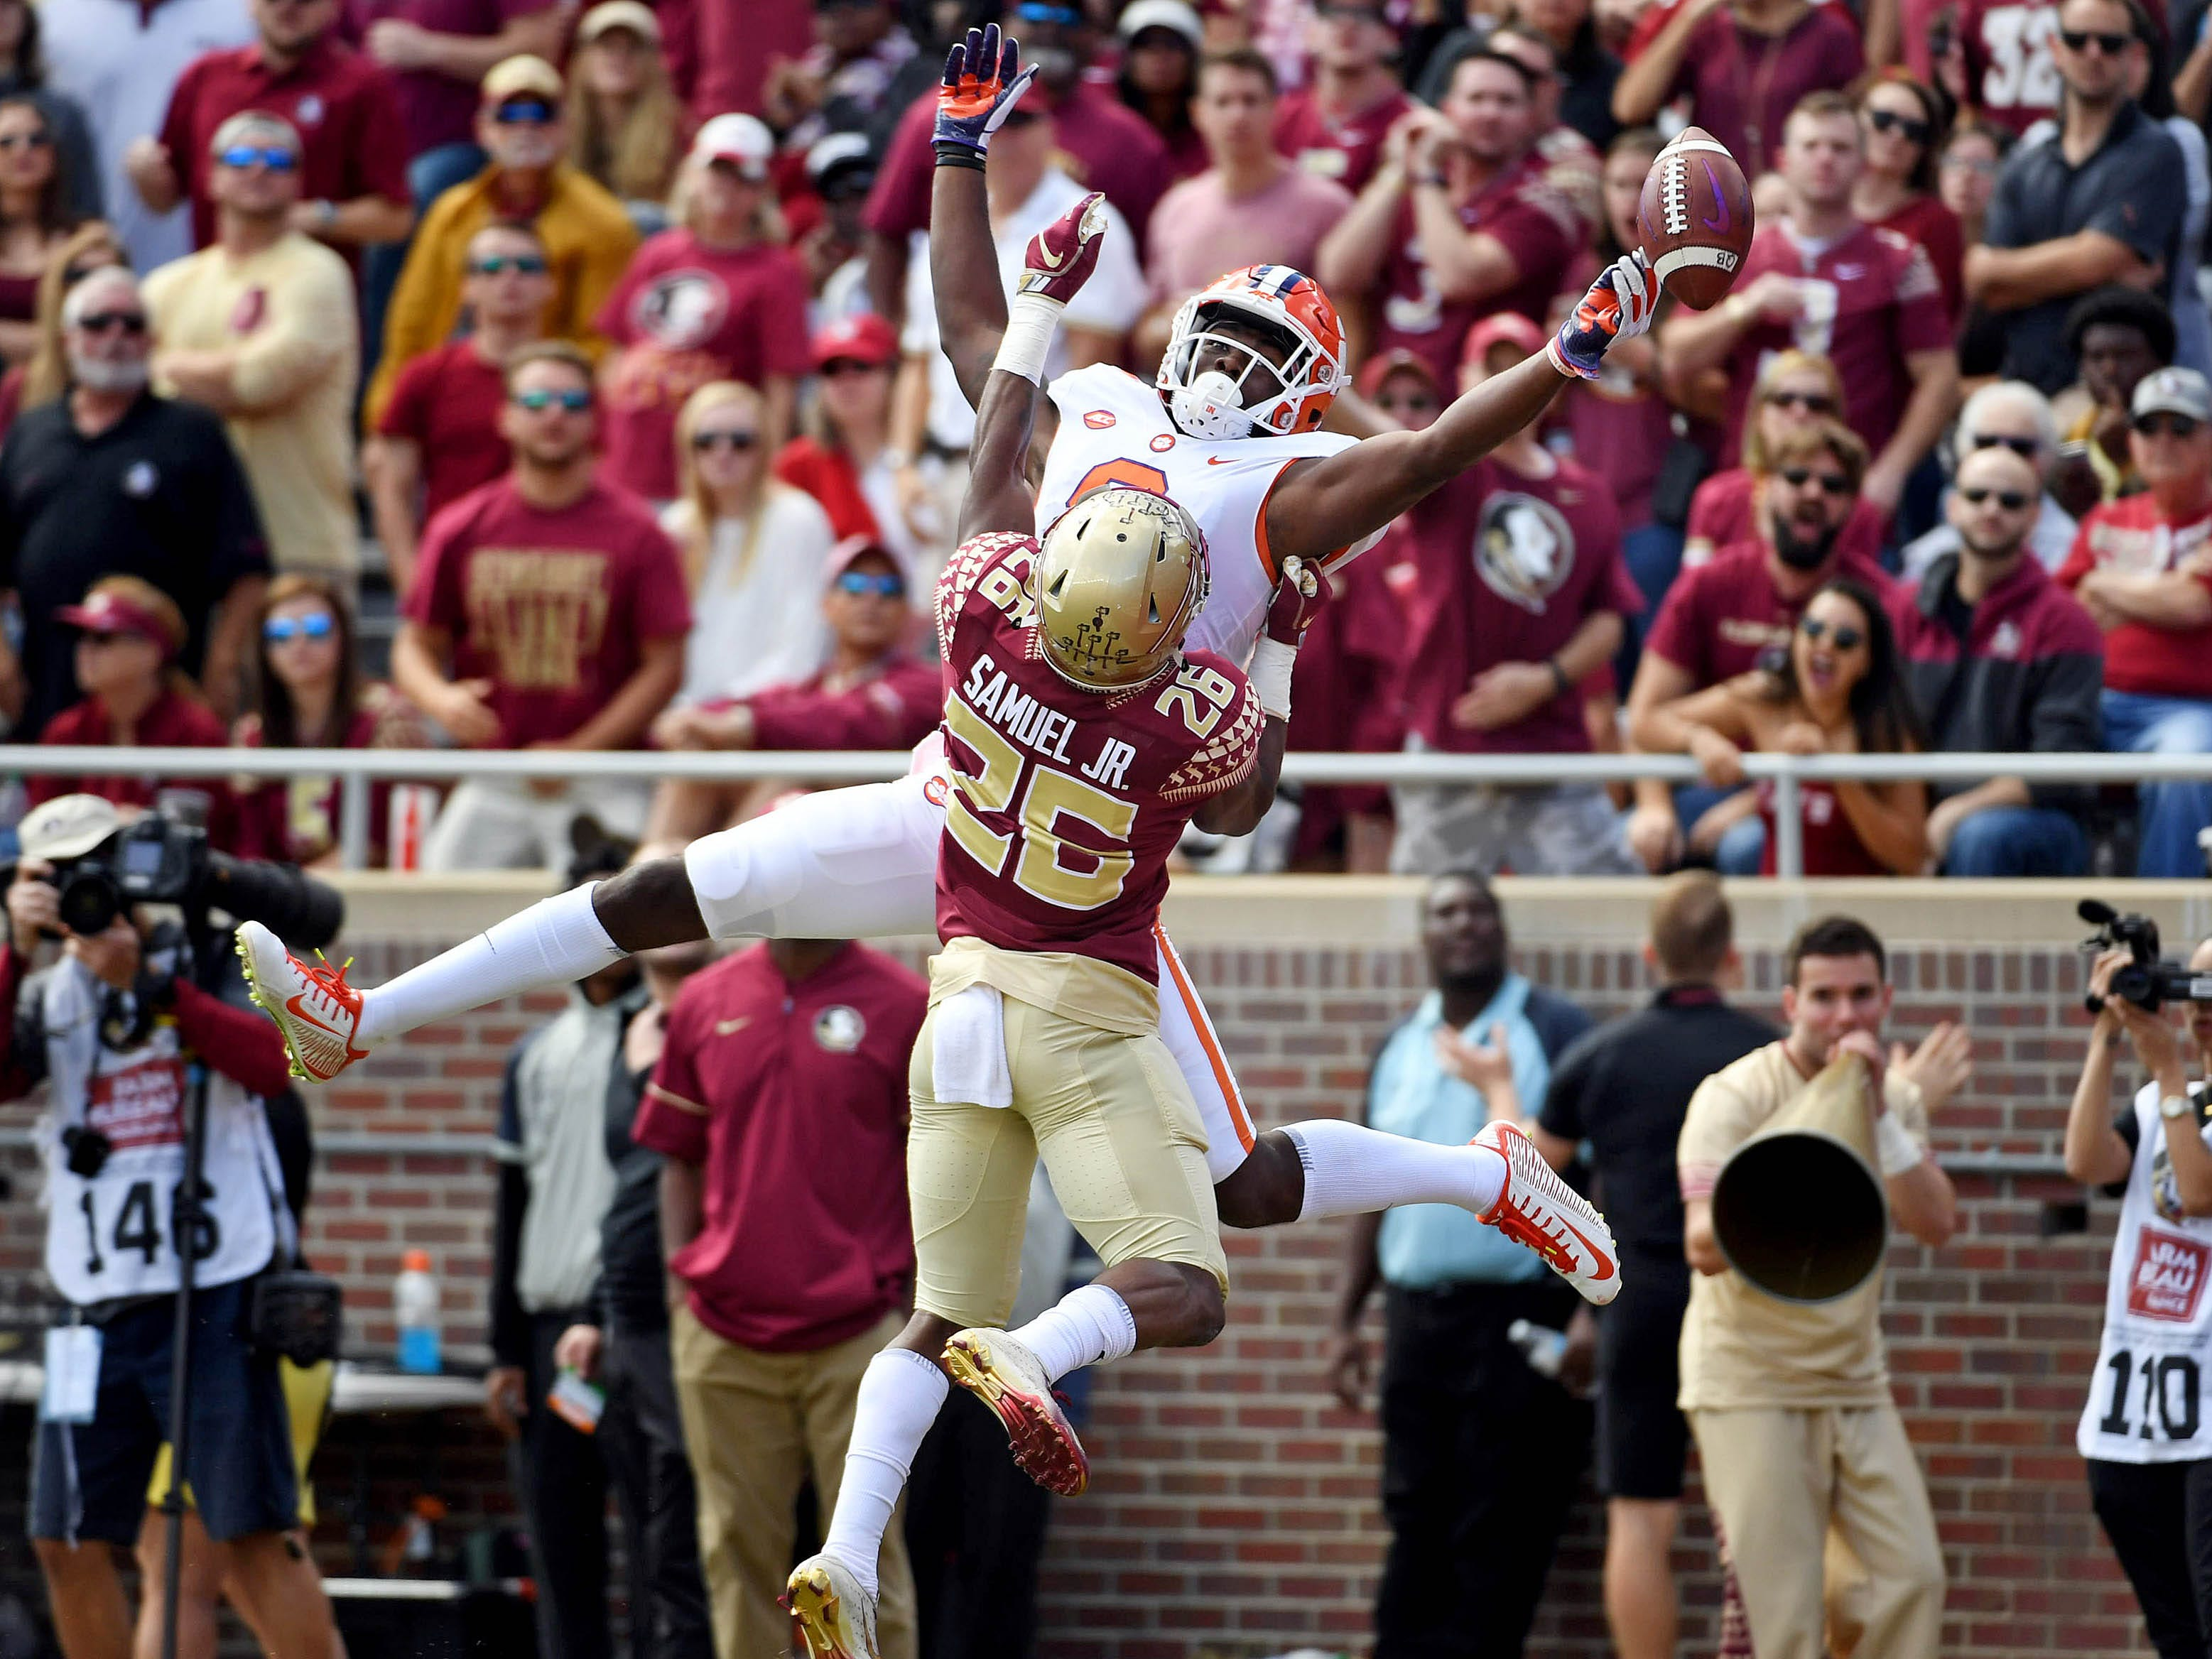 Clemson Tigers wide receiver Justyn Ross (8) misses a pass for a touchdown as Florida State Seminoles defensive back Asante Samuel Jr. (26) defends at Doak Campbell Stadium.